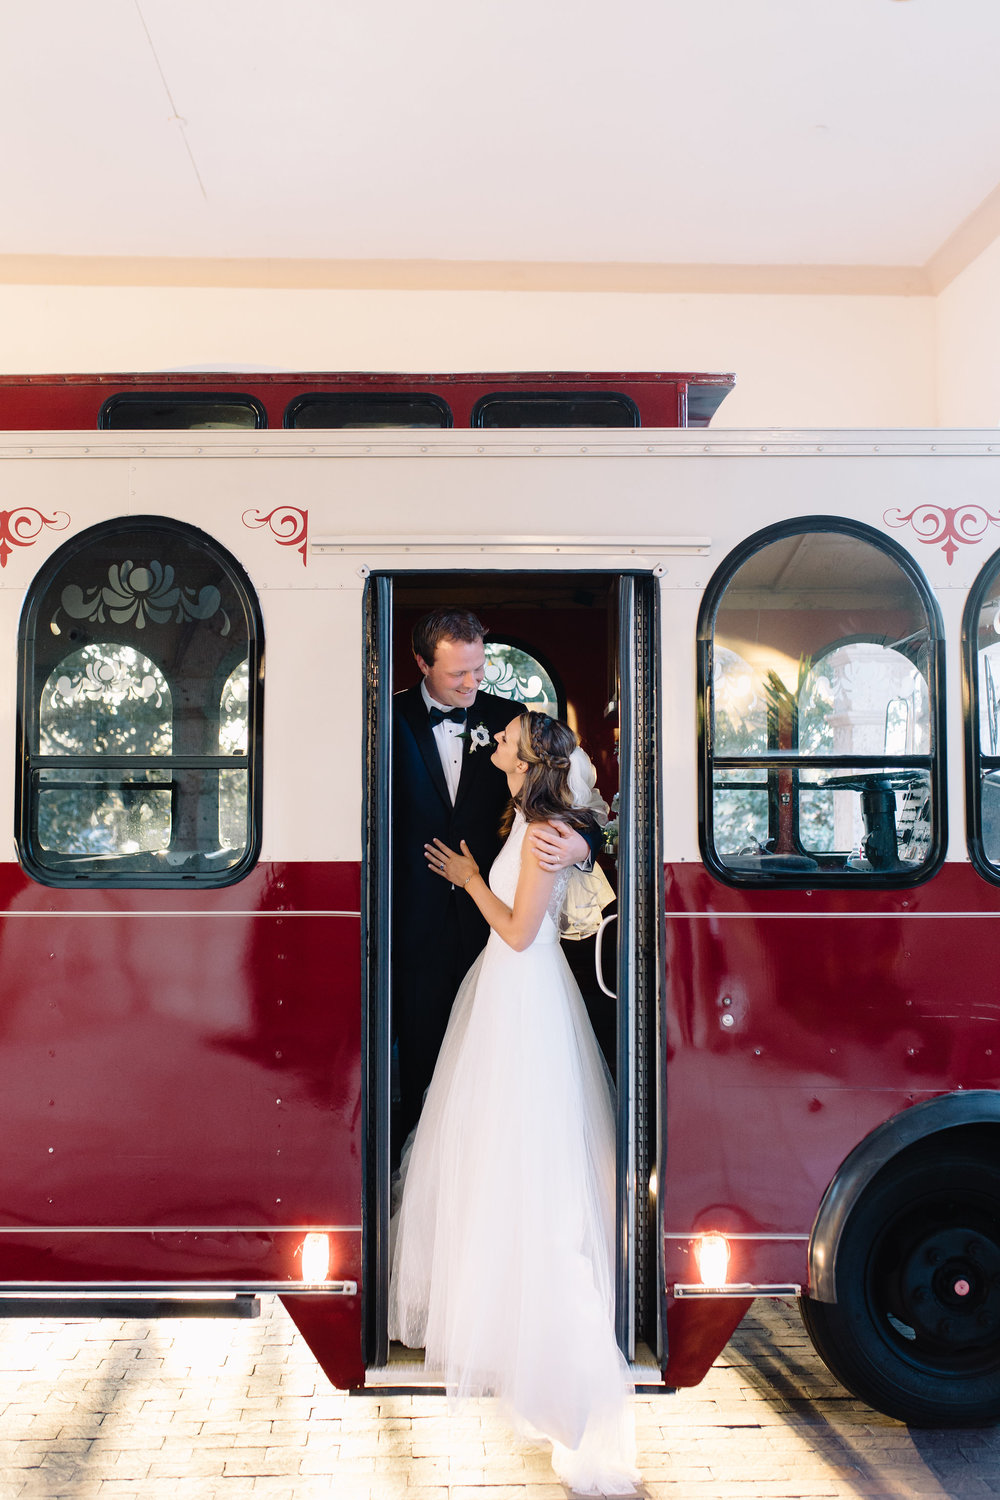 Trolley cars are the best kind of wedding transportation